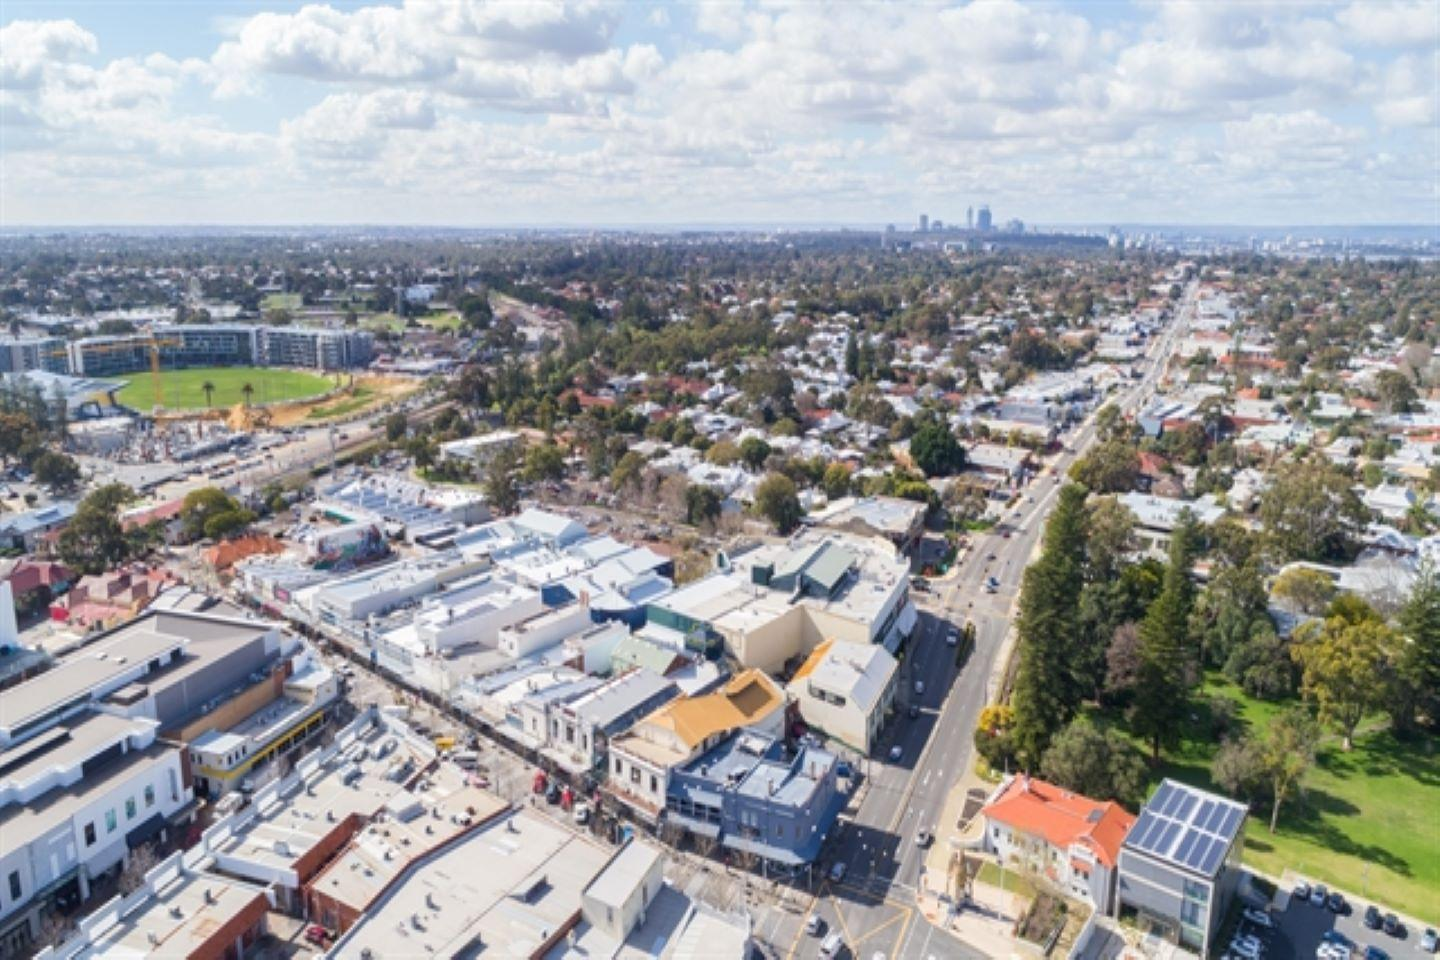 Mixed results for Perth's retail strips